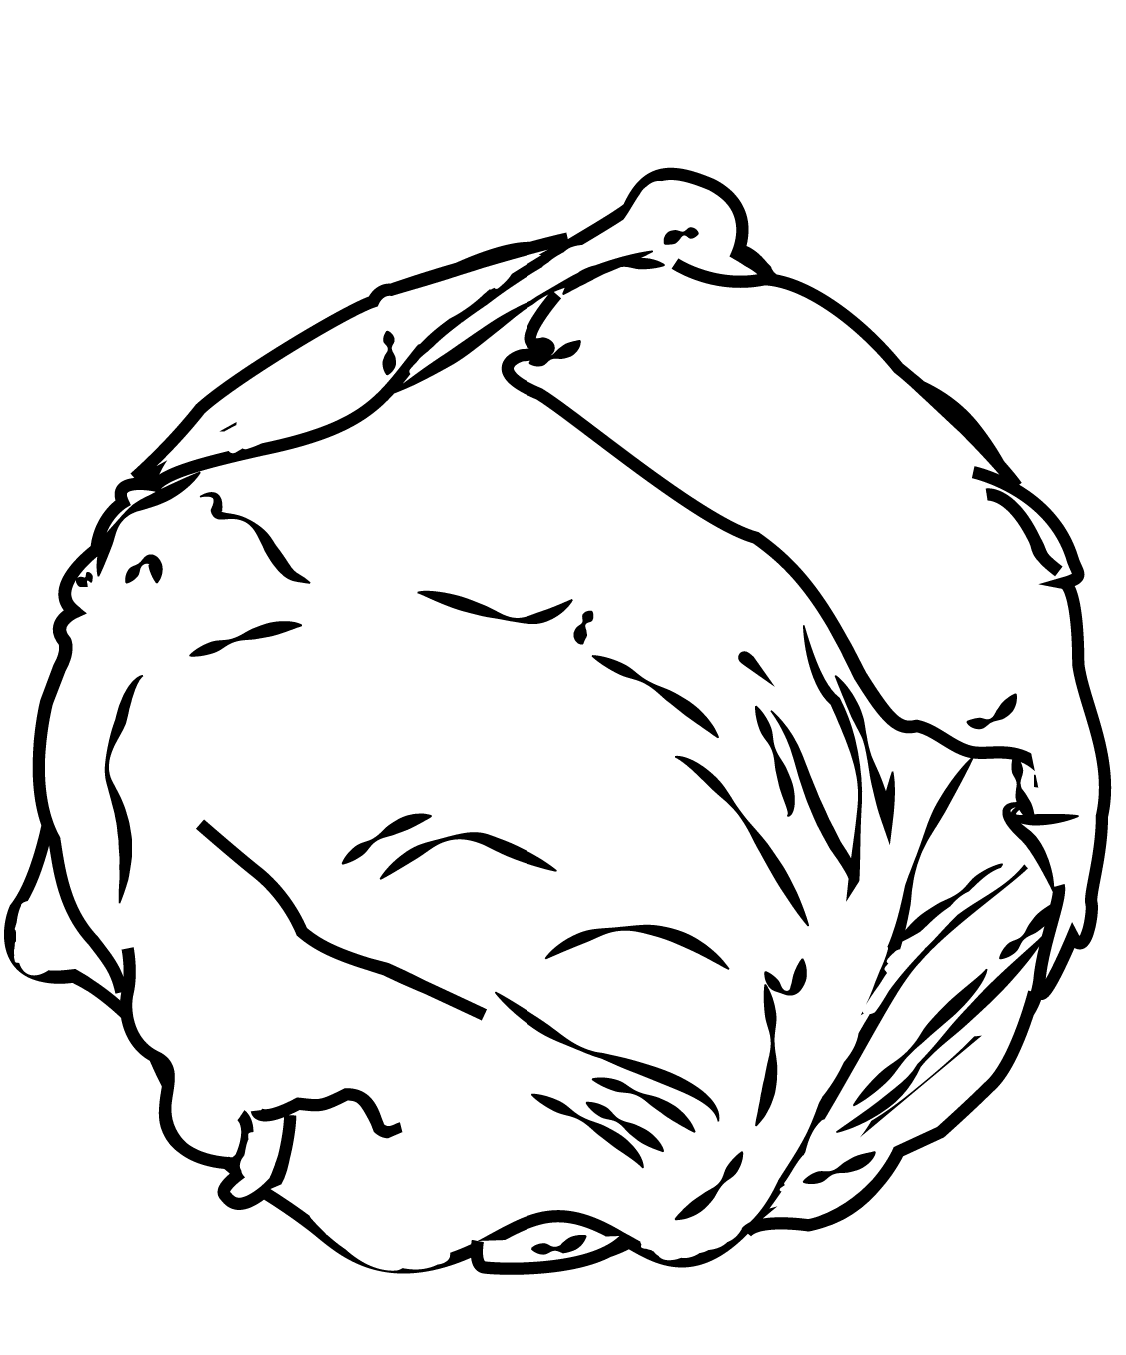 Cabbage coloring page